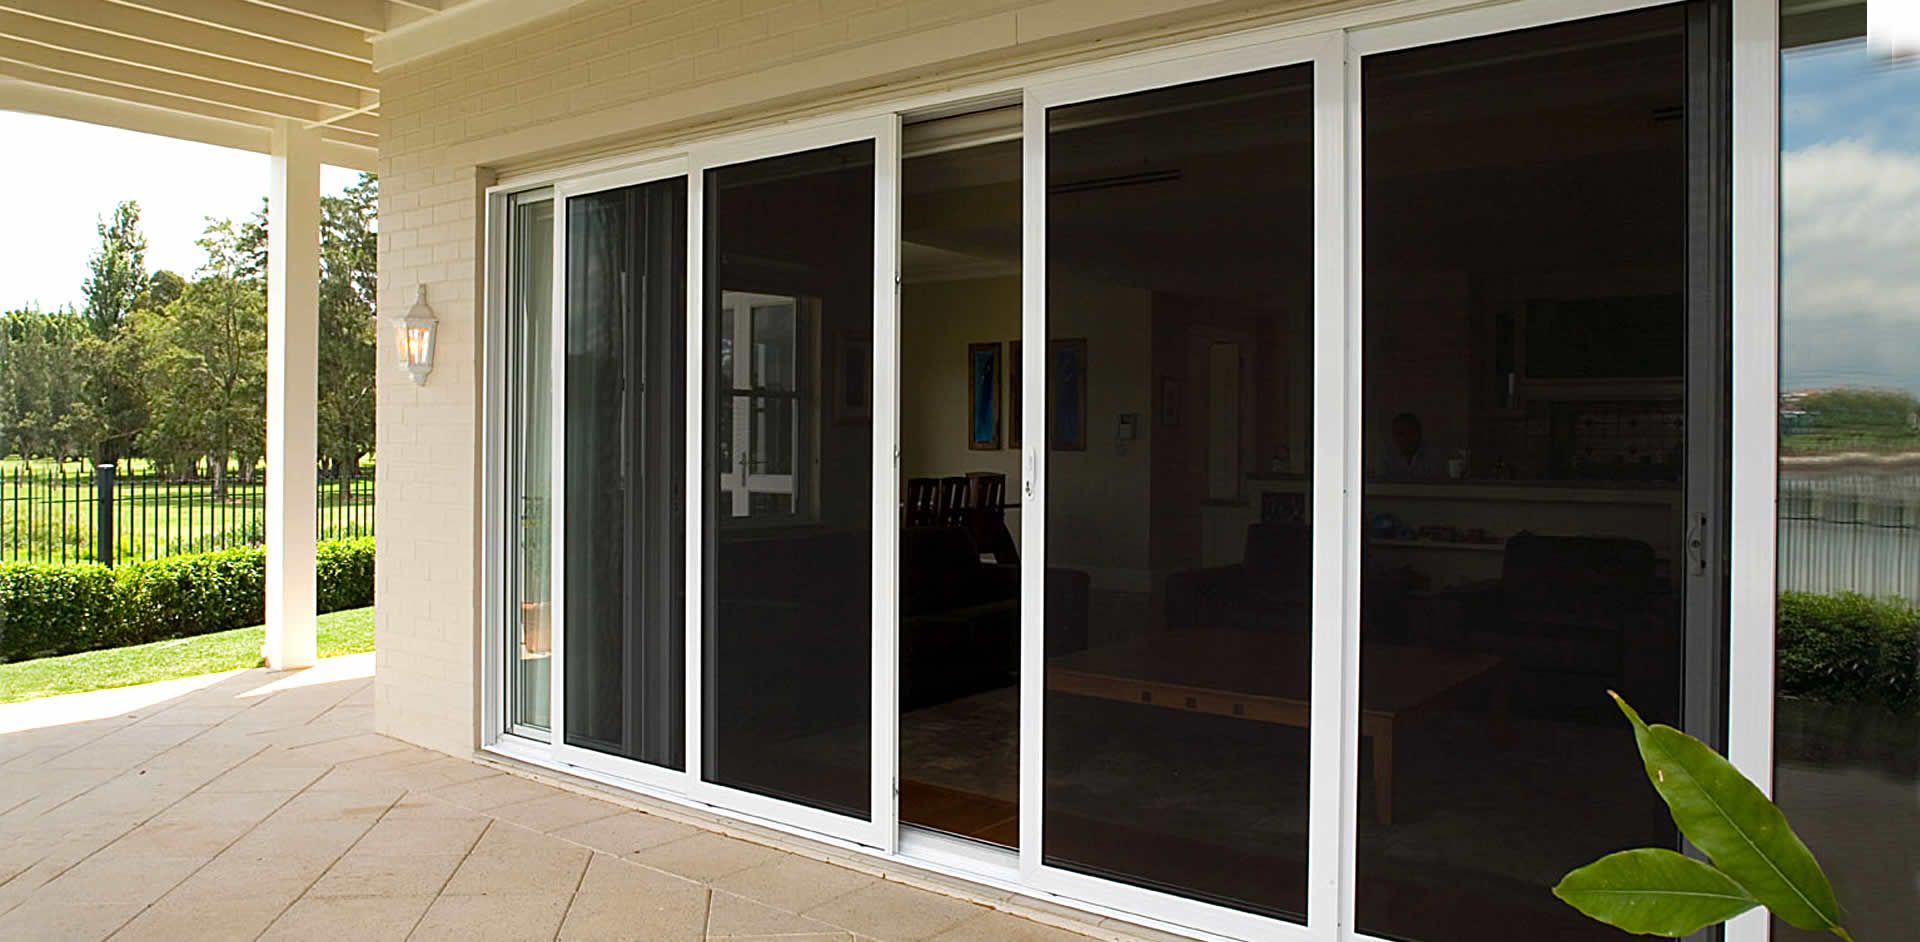 VuSafe Security Screens For Doors And Windows Provide The Protection Of  Steel With The Look Of